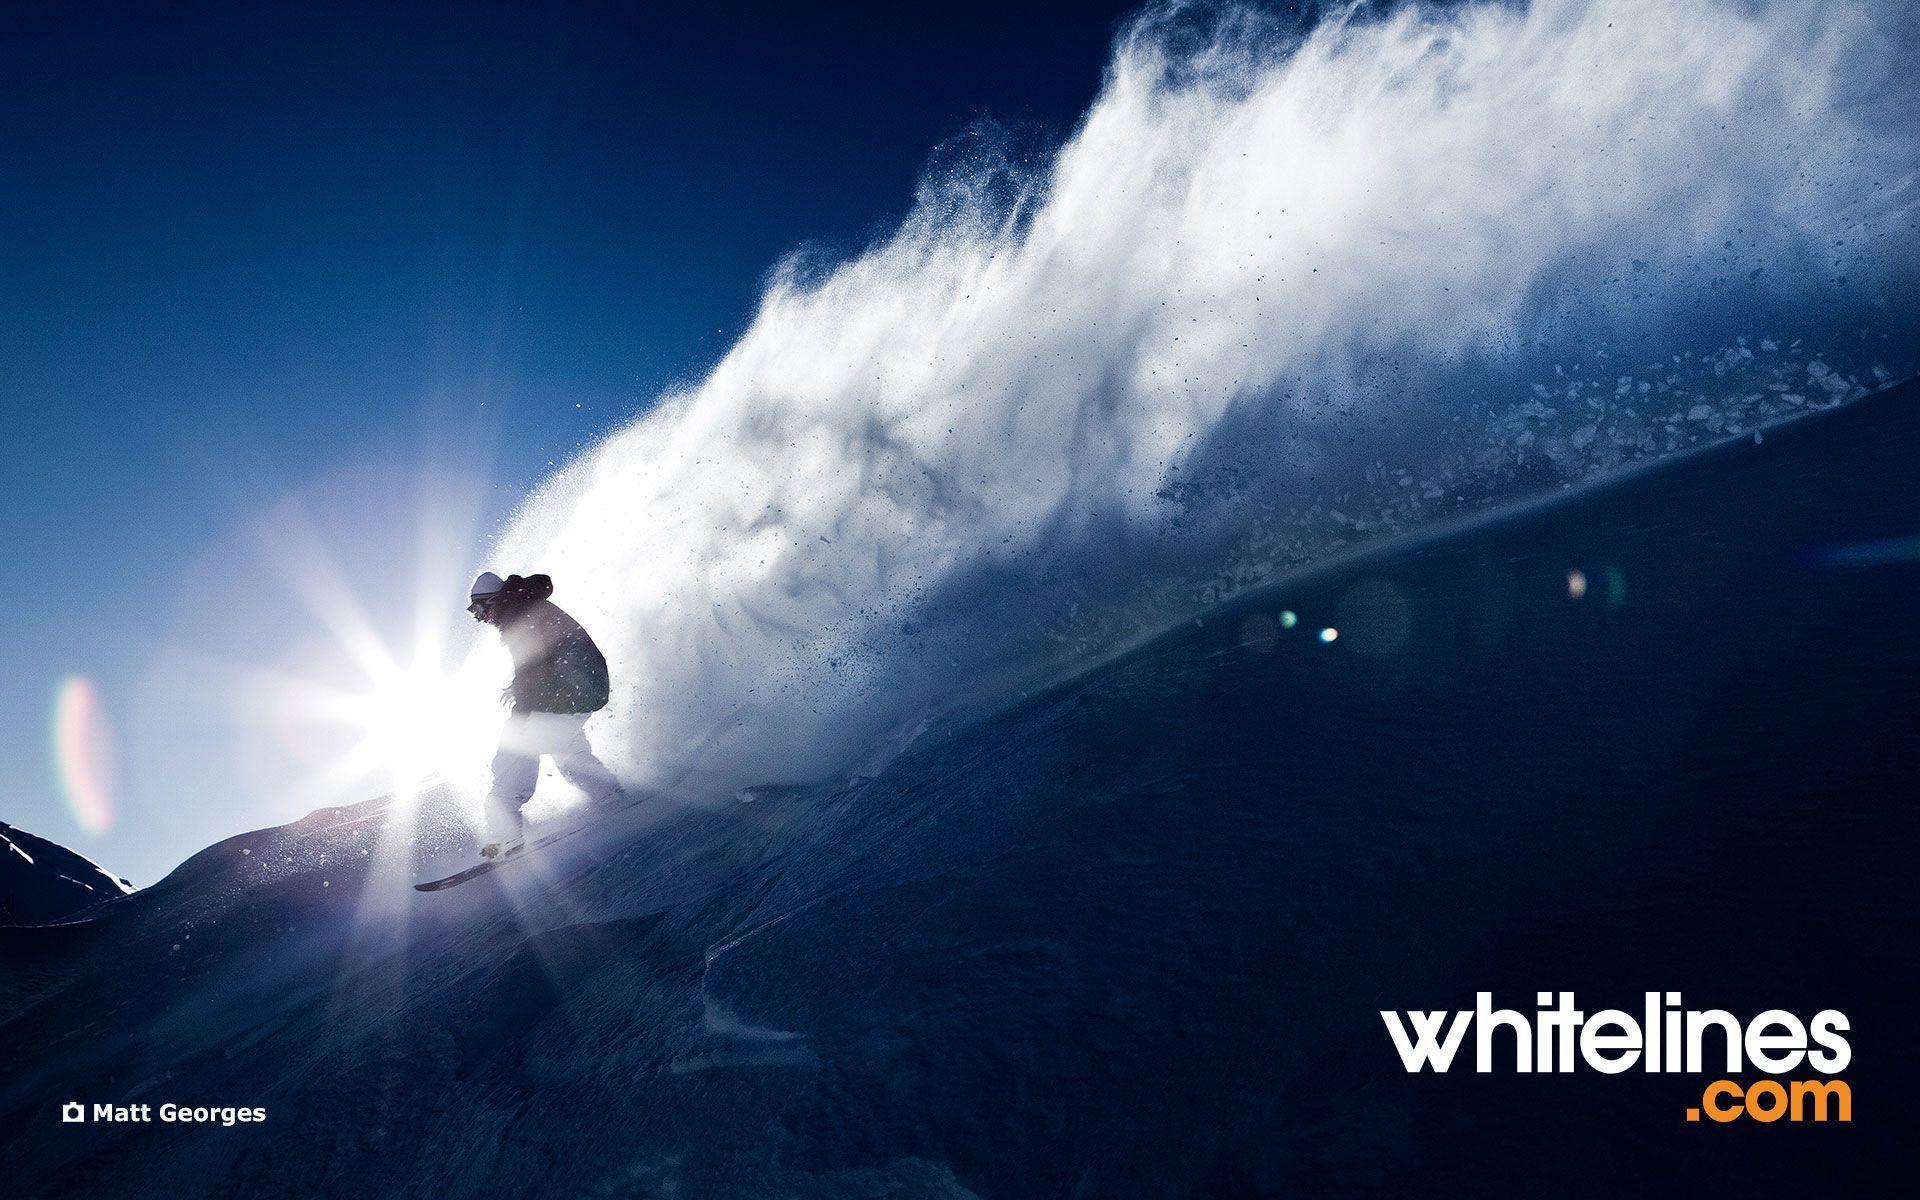 Wallpapers | Page 5 of 15 | Whitelines Snowboarding